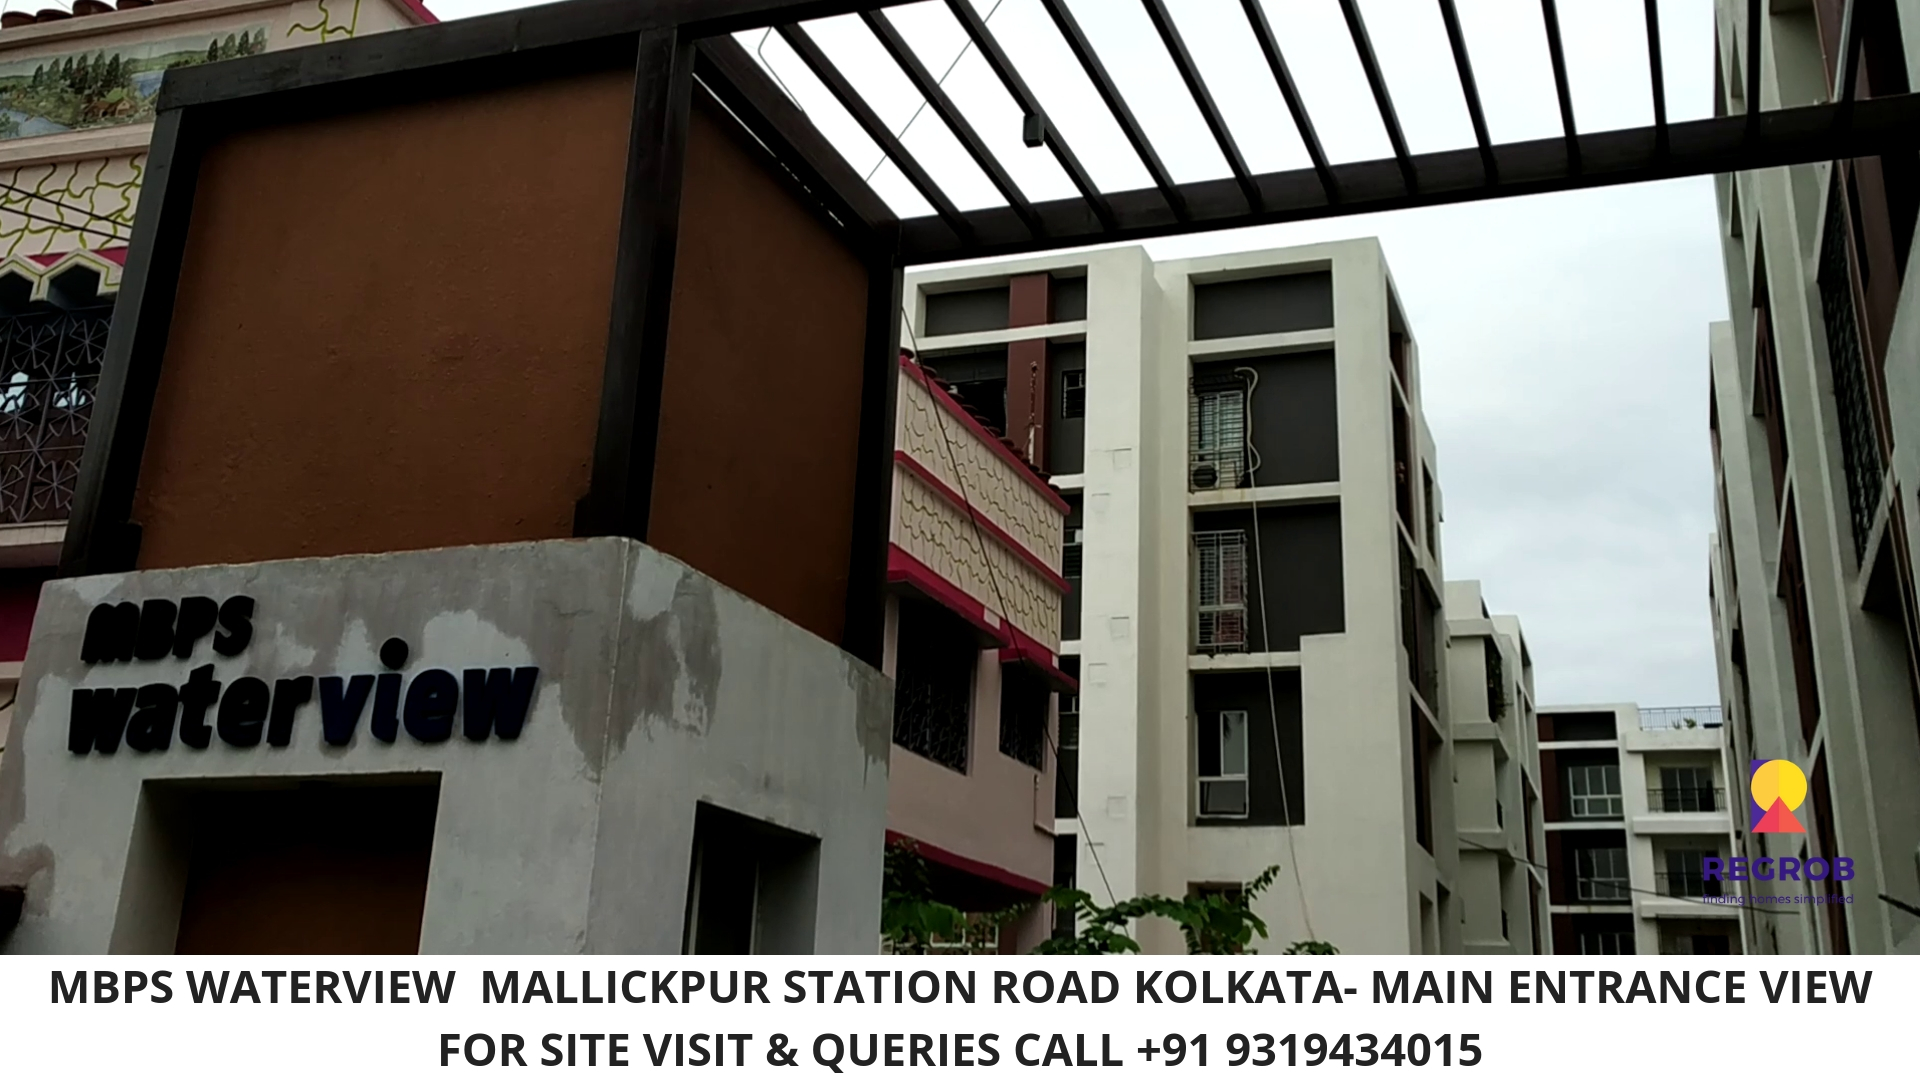 MBPS Waterview Mallickpur Station Road Kolkata